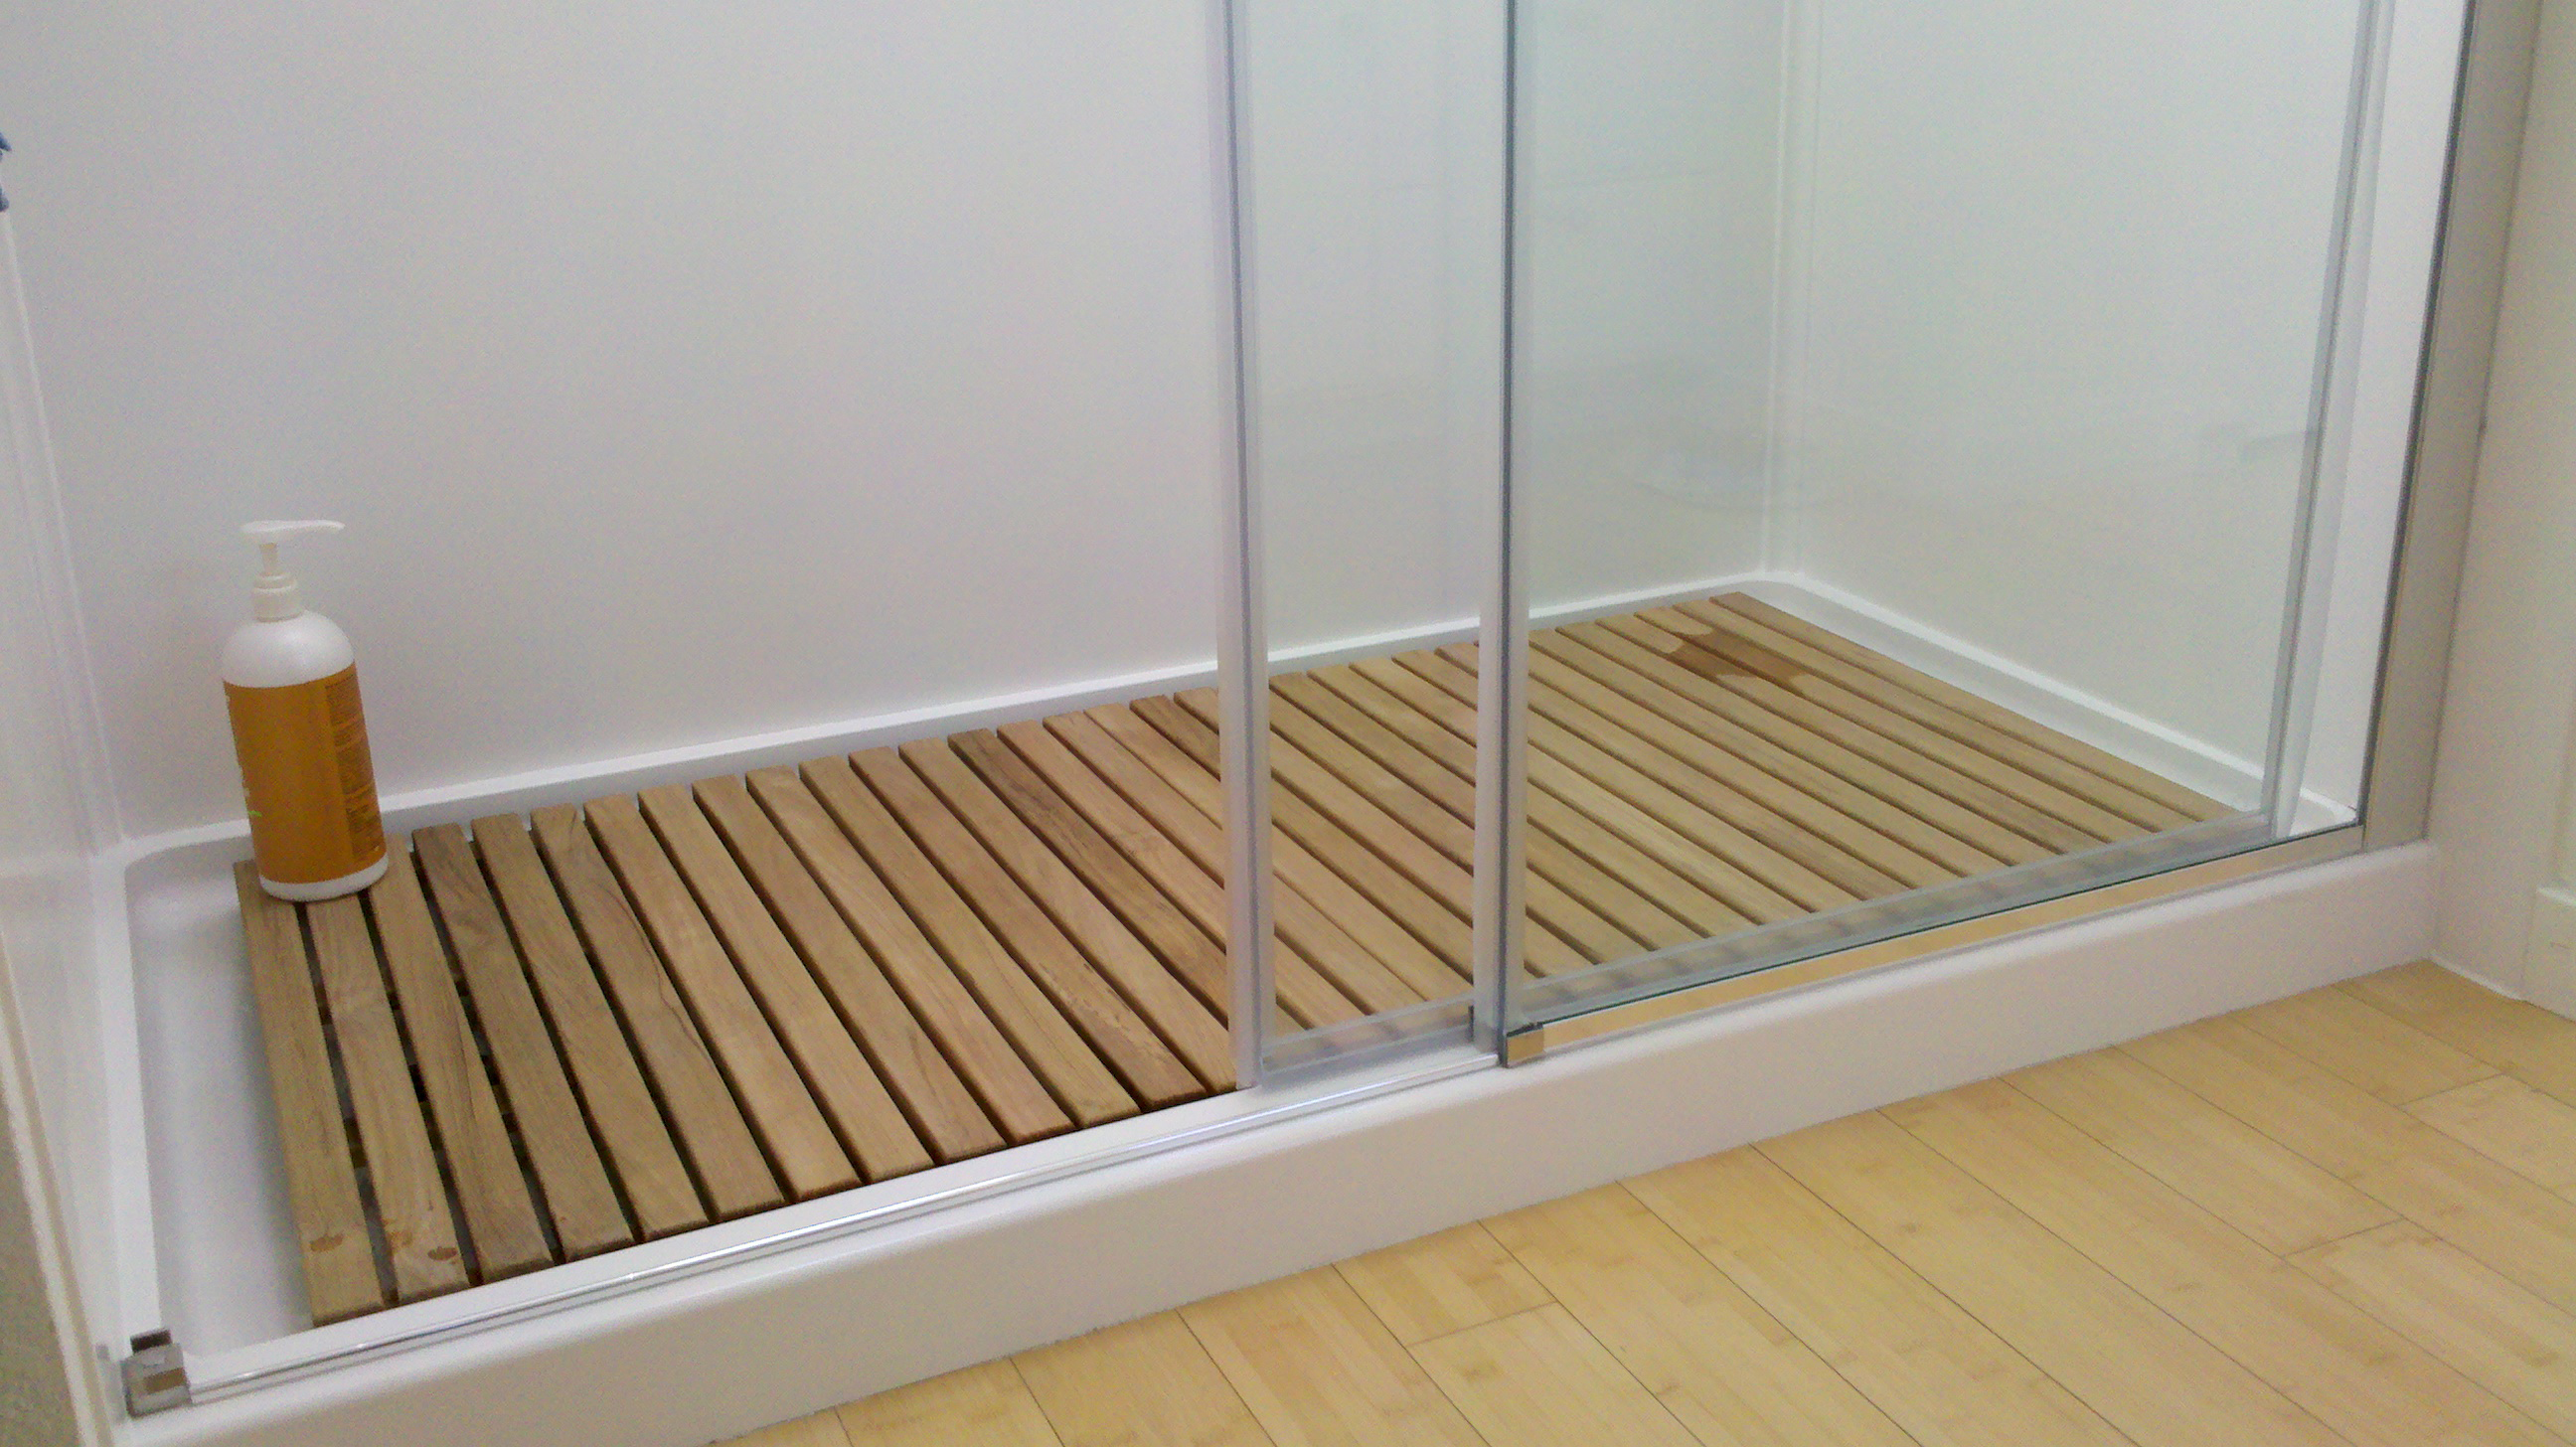 Goldenteak's Teak Bath Mat in use inside a shower